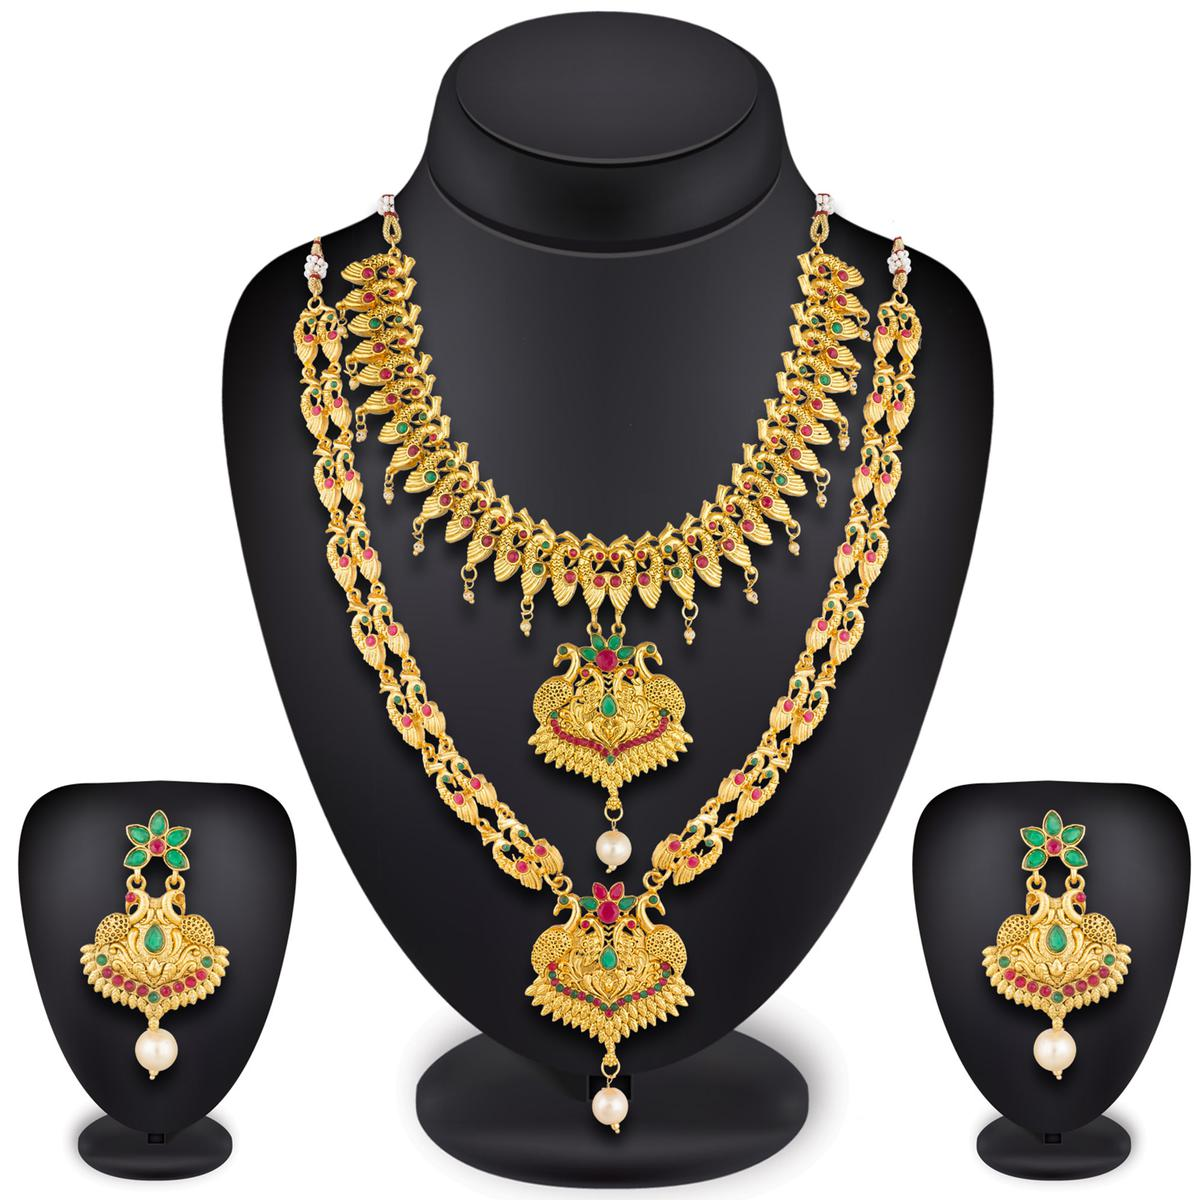 Sensational Golden Colored Mix Metal & Stone Work Necklace Set